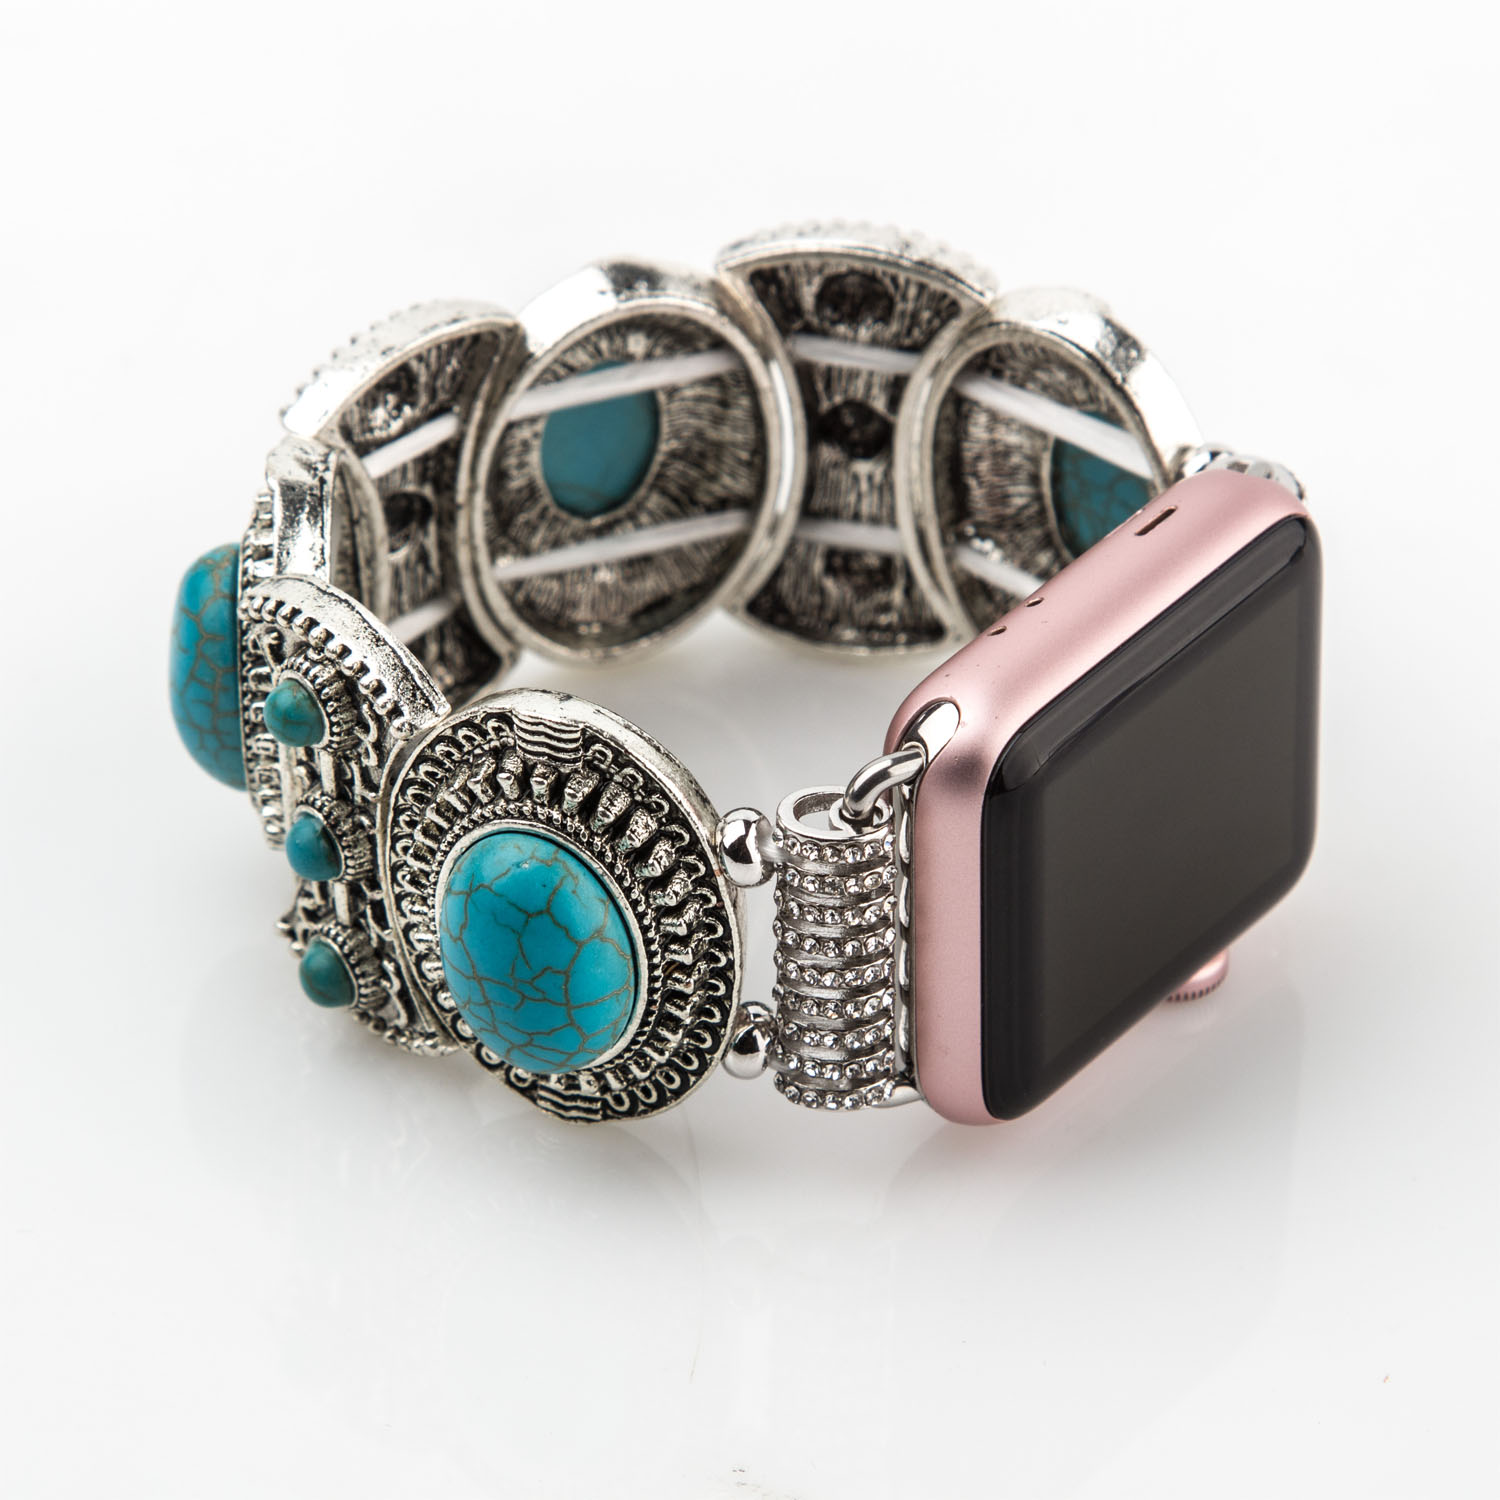 bracelet apple serie 3 retro turquoise stretch bracelet for apple series 3 322